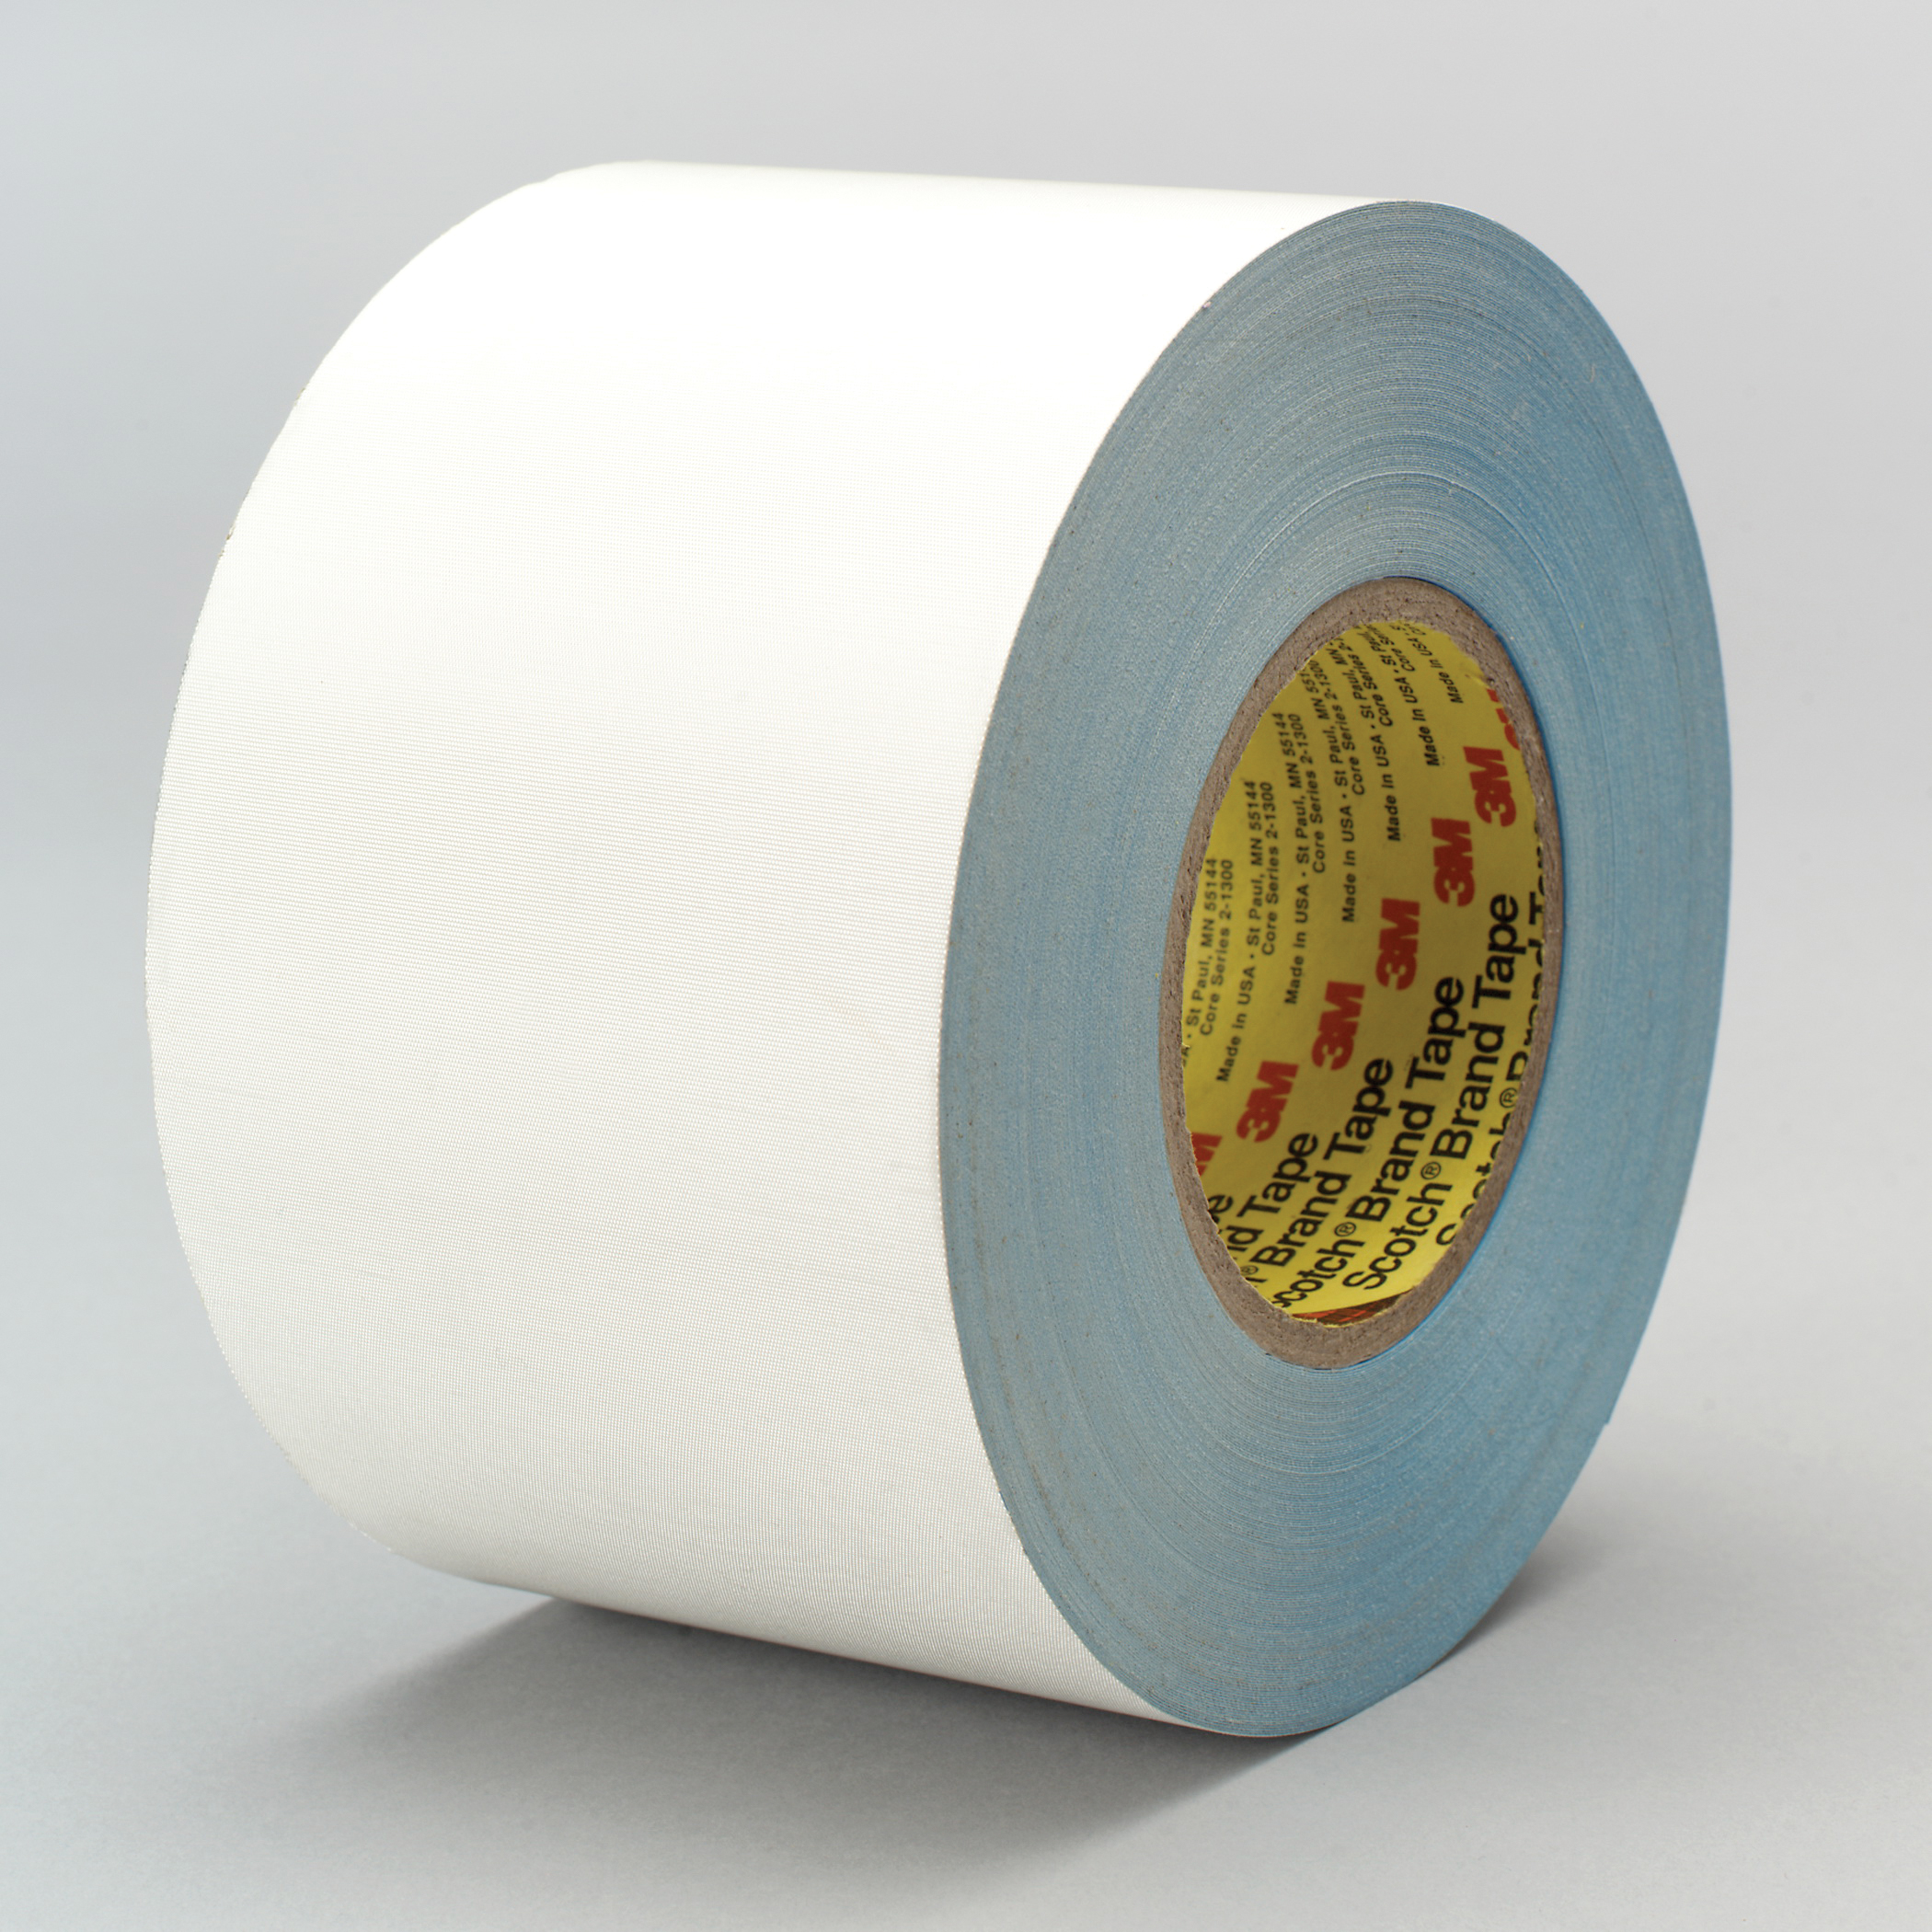 3M™ 021200-85653 Cloth Tape, 60 yd L x 5 in W, 8.3 mil THK, Thermoset Rubber Resin Adhesive, Glass Cloth Backing, White